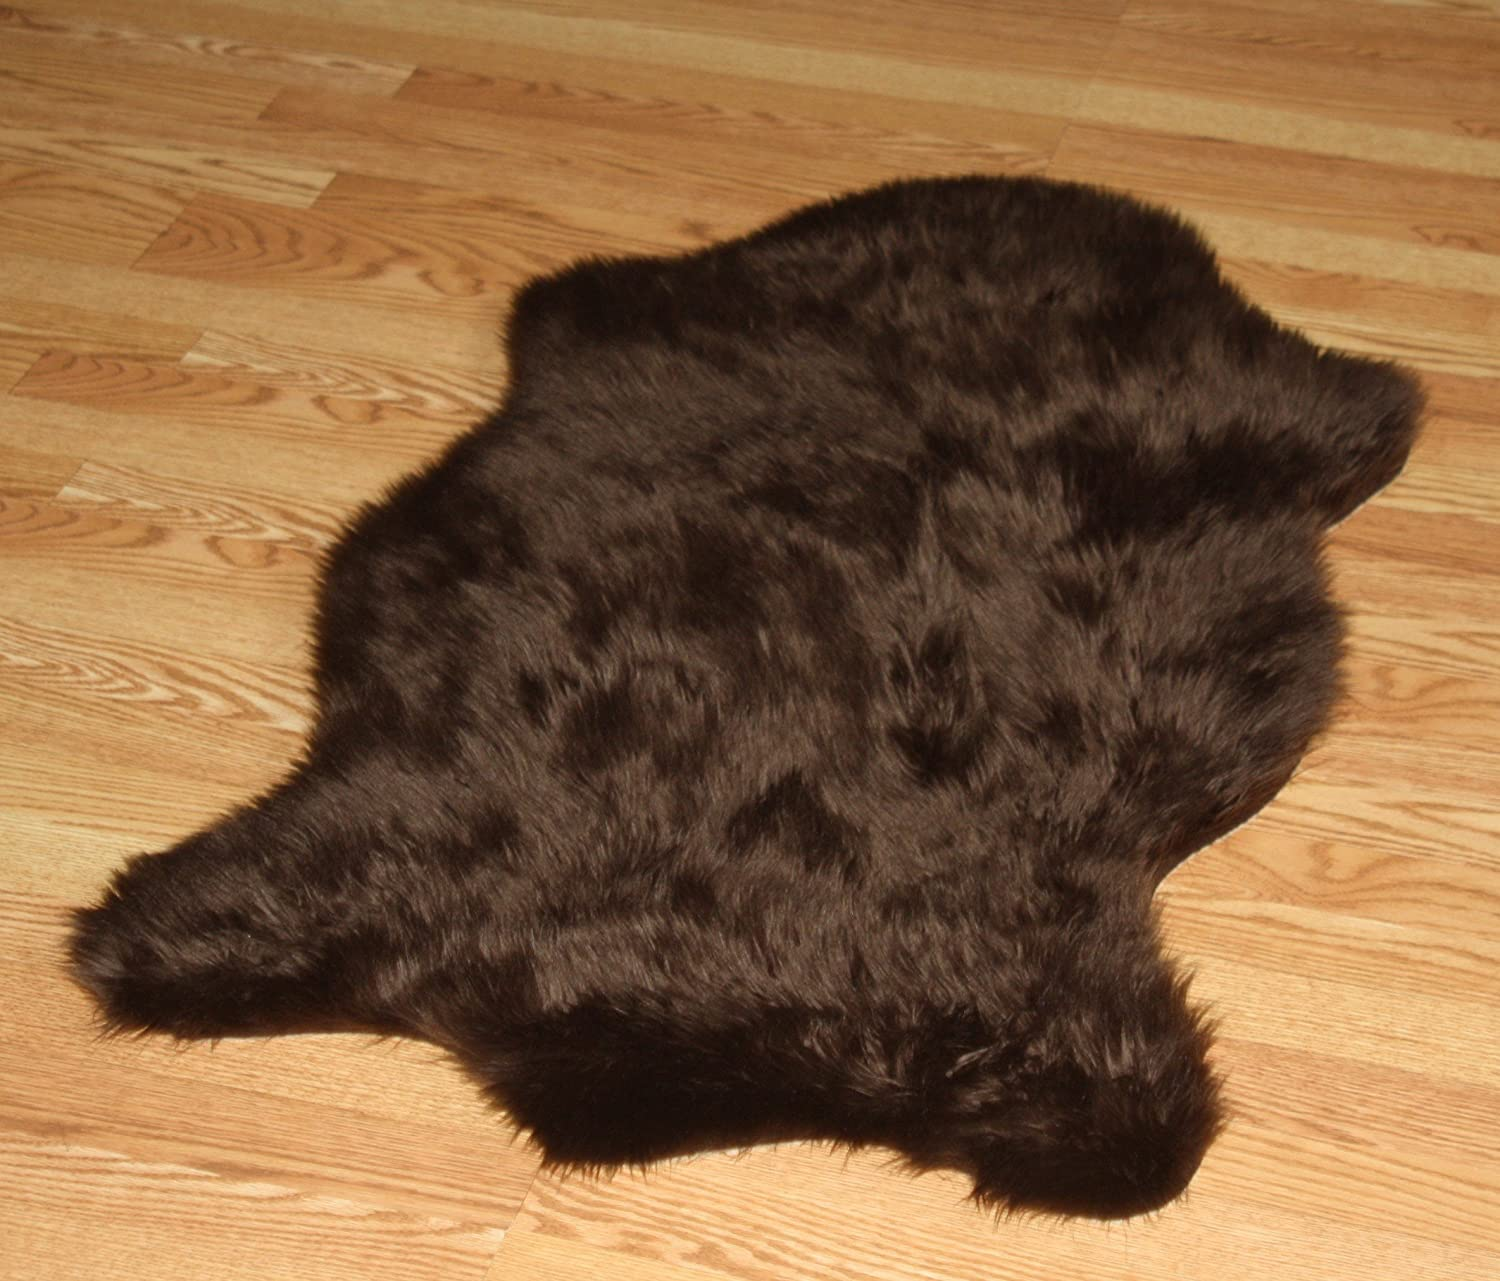 Amazon.com: Faux Animal Skin Shape Rug 3' X 5' (DARK BROWN): Kitchen &  Dining - Amazon.com: Faux Animal Skin Shape Rug 3' X 5' (DARK BROWN